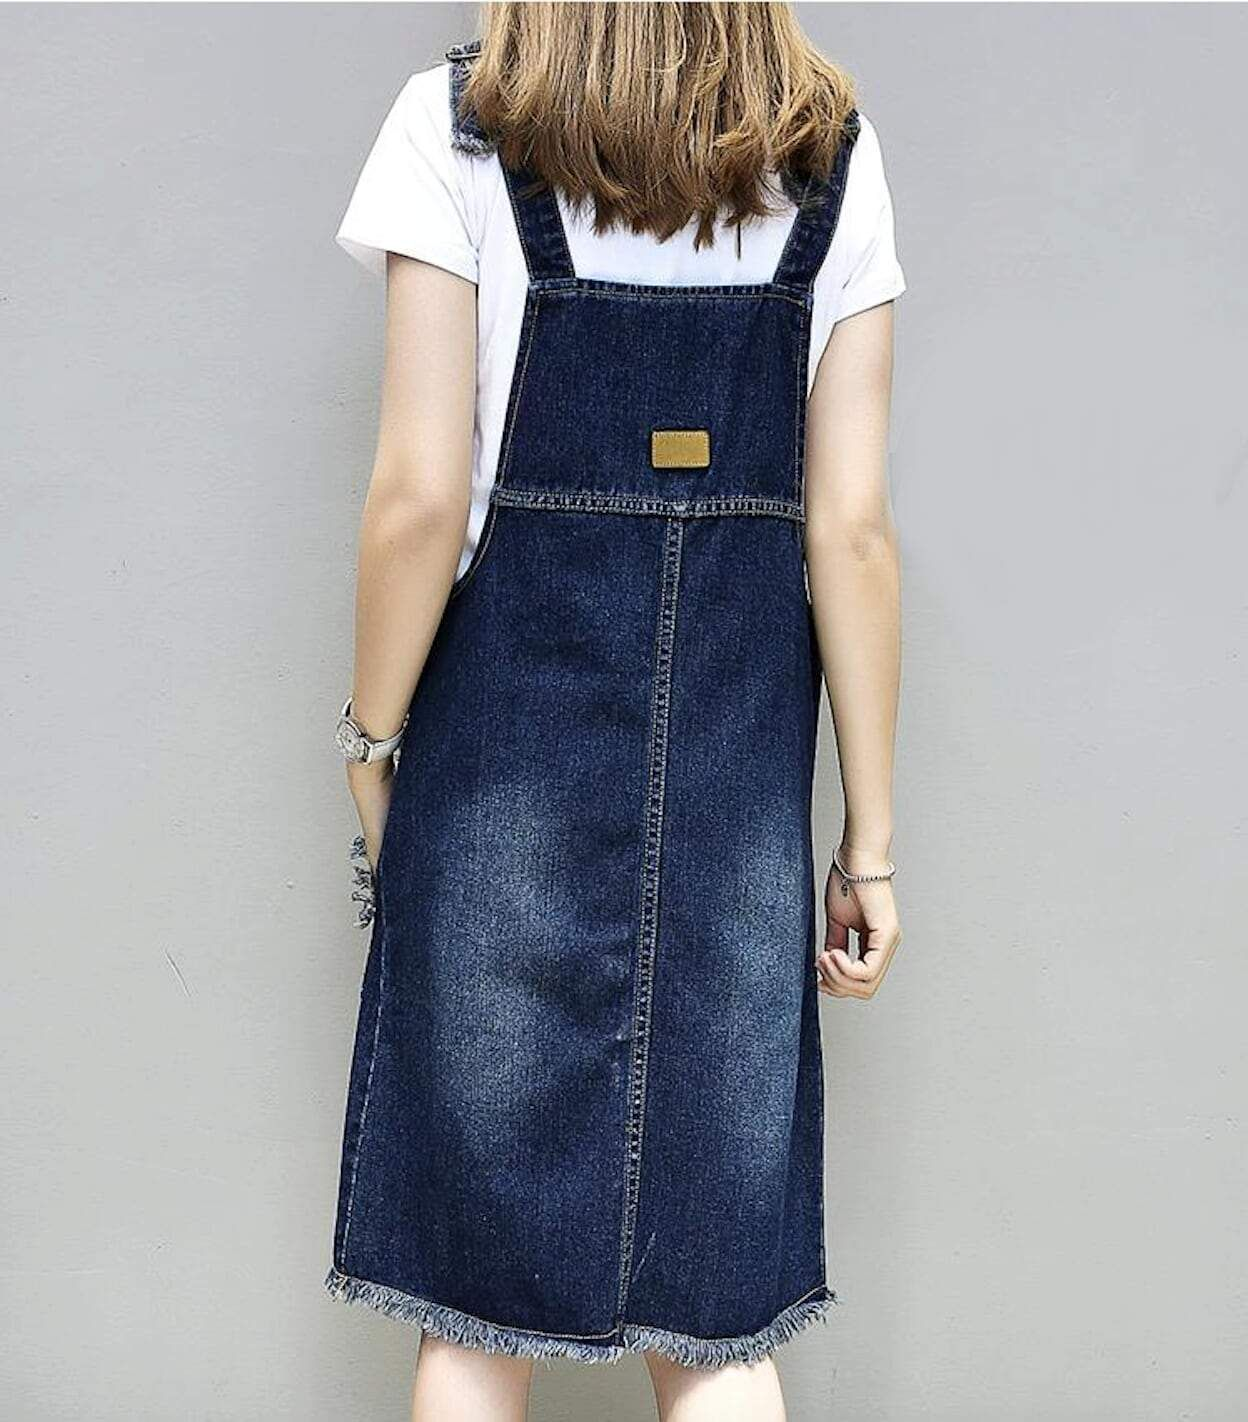 Womens Denim Pinafore Dress with Pockets Fabric: Cotton Blend Fit: Sim Fit Color Available: Blue Size: S, M, L S Chest : 39 inch - Length : 43 inch M Chest : 43 inch - Length : 48 inch L Chest : 47 inch - Length : 54 inch **Measured lying flat, please leave extra room for clothing. There may be slight differences in measurements.